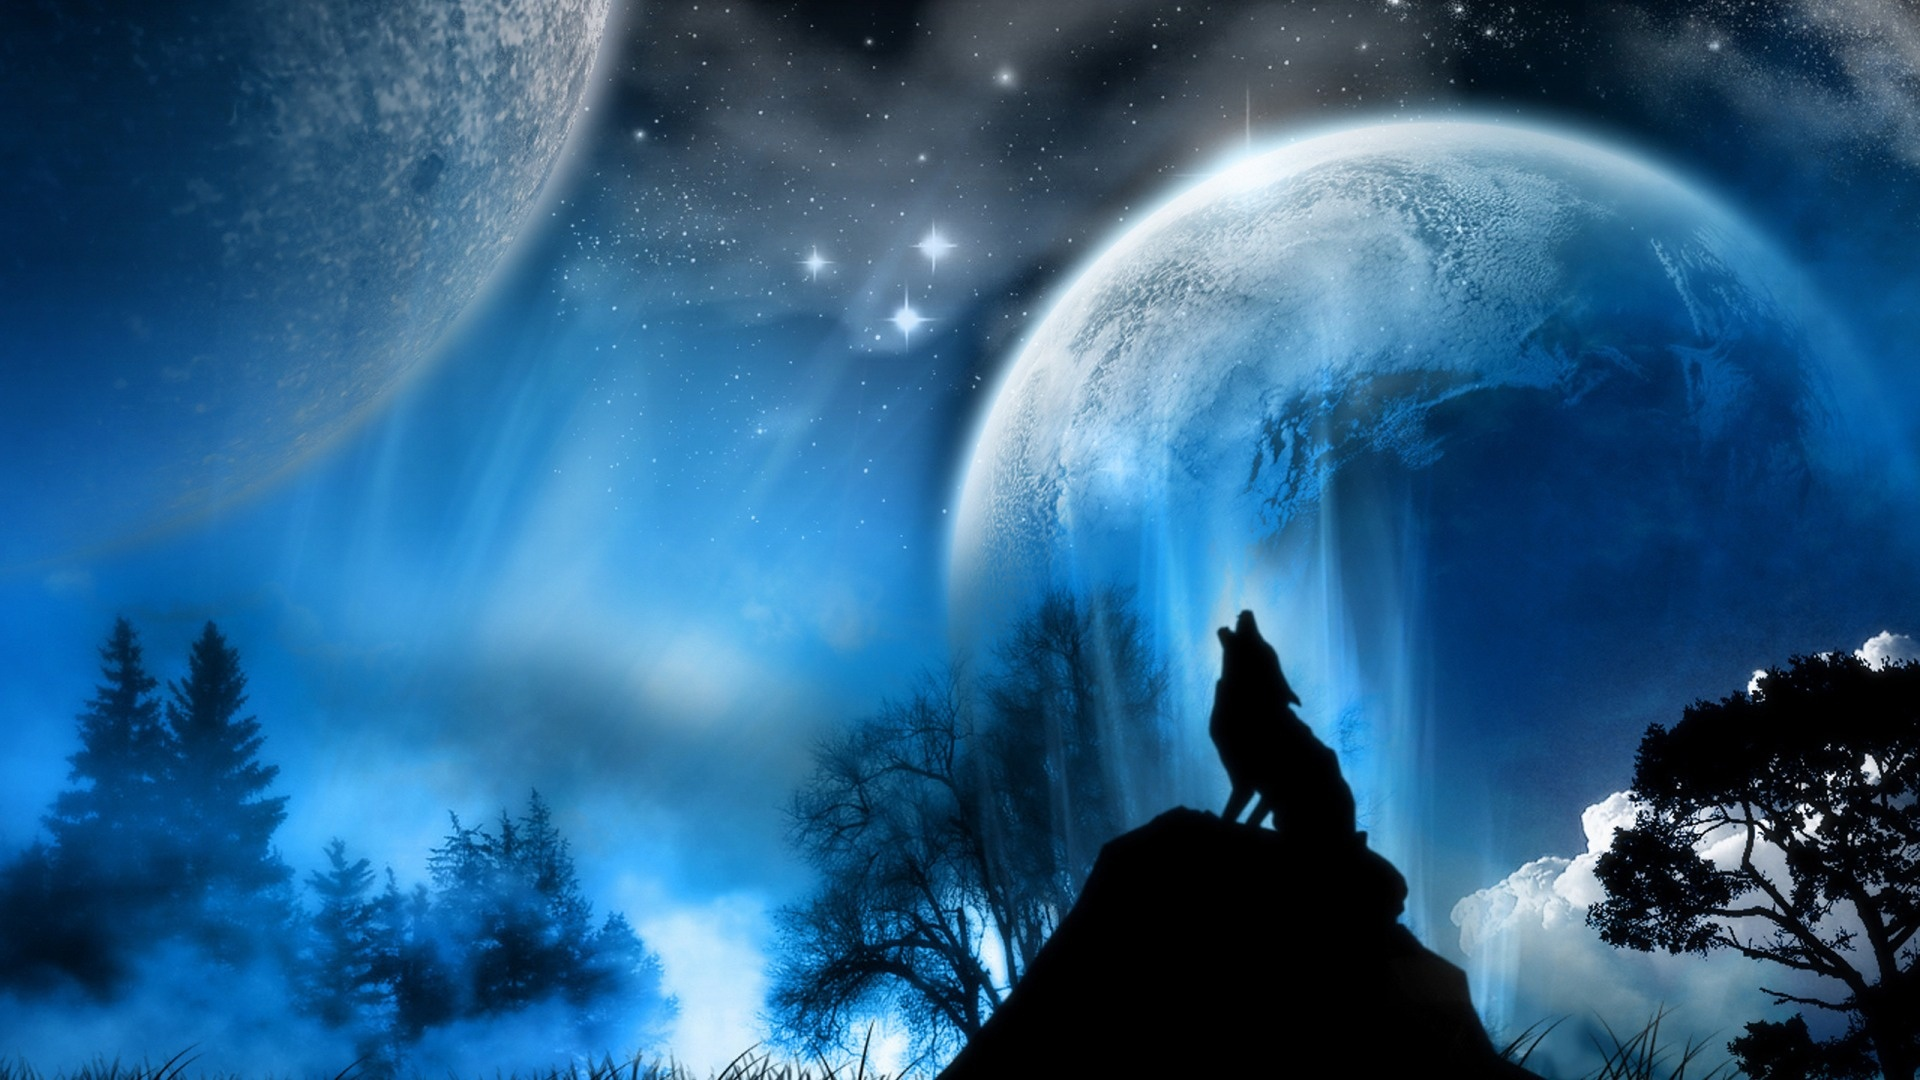 Desktop-best-wolf-hd-Wolf-Hd-Wolf-Desktop-Best-Wolf-Fo-wallpaper-wpc5804078